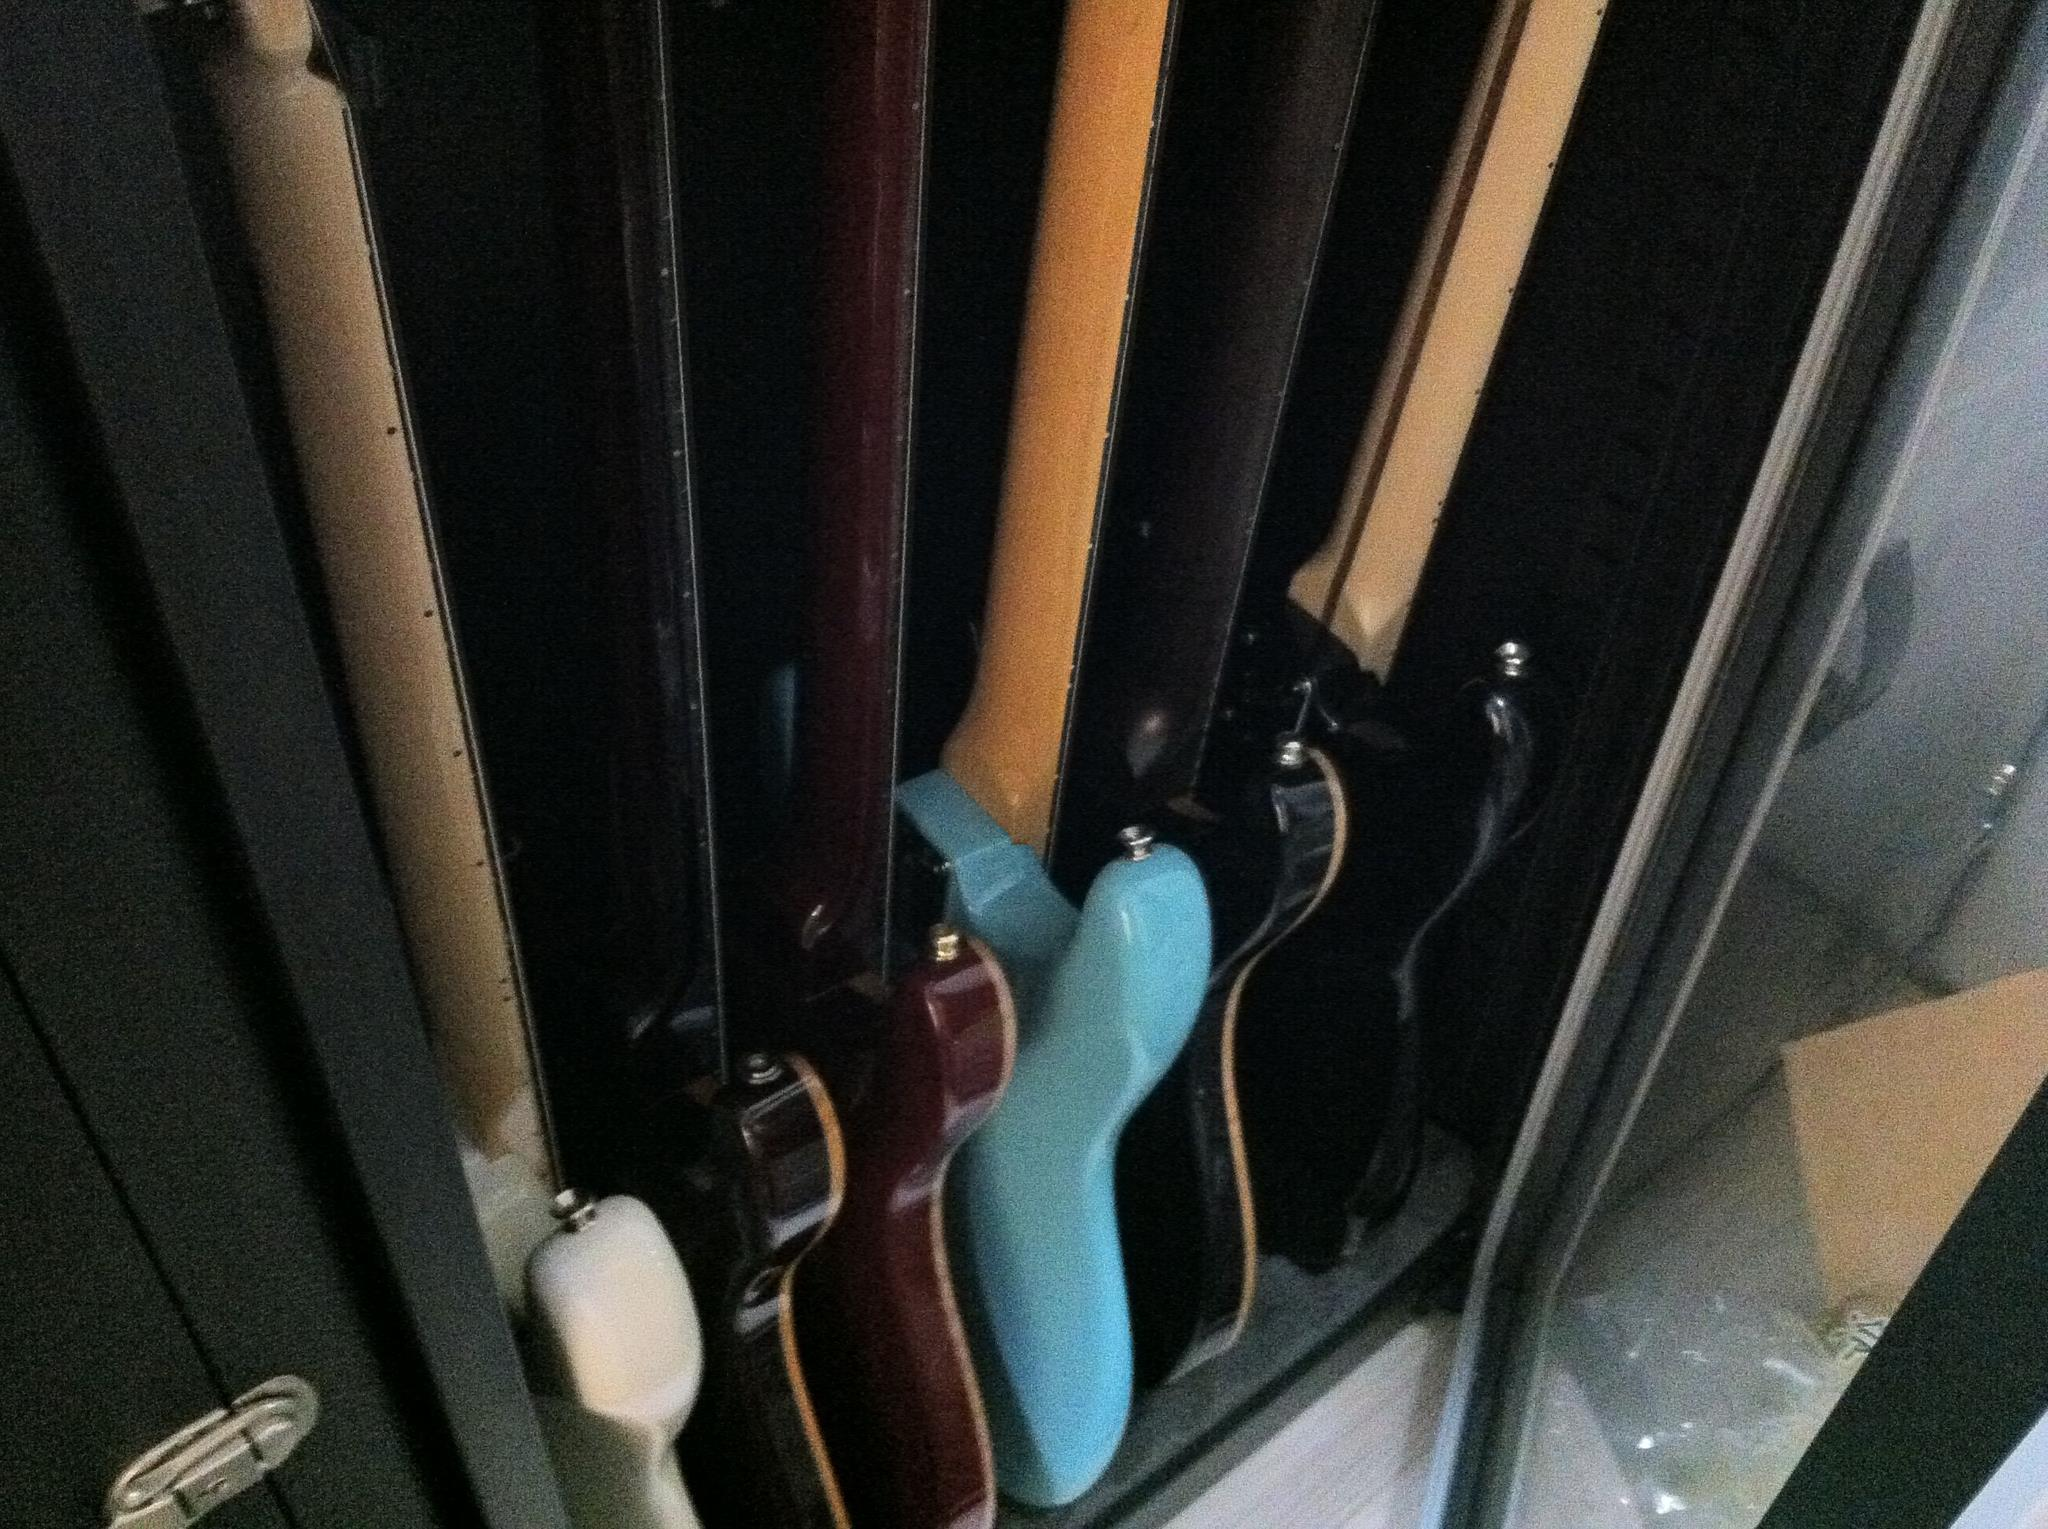 Guitar collection protected in Eureka Dry Tech Humidity Controlled Cabinet